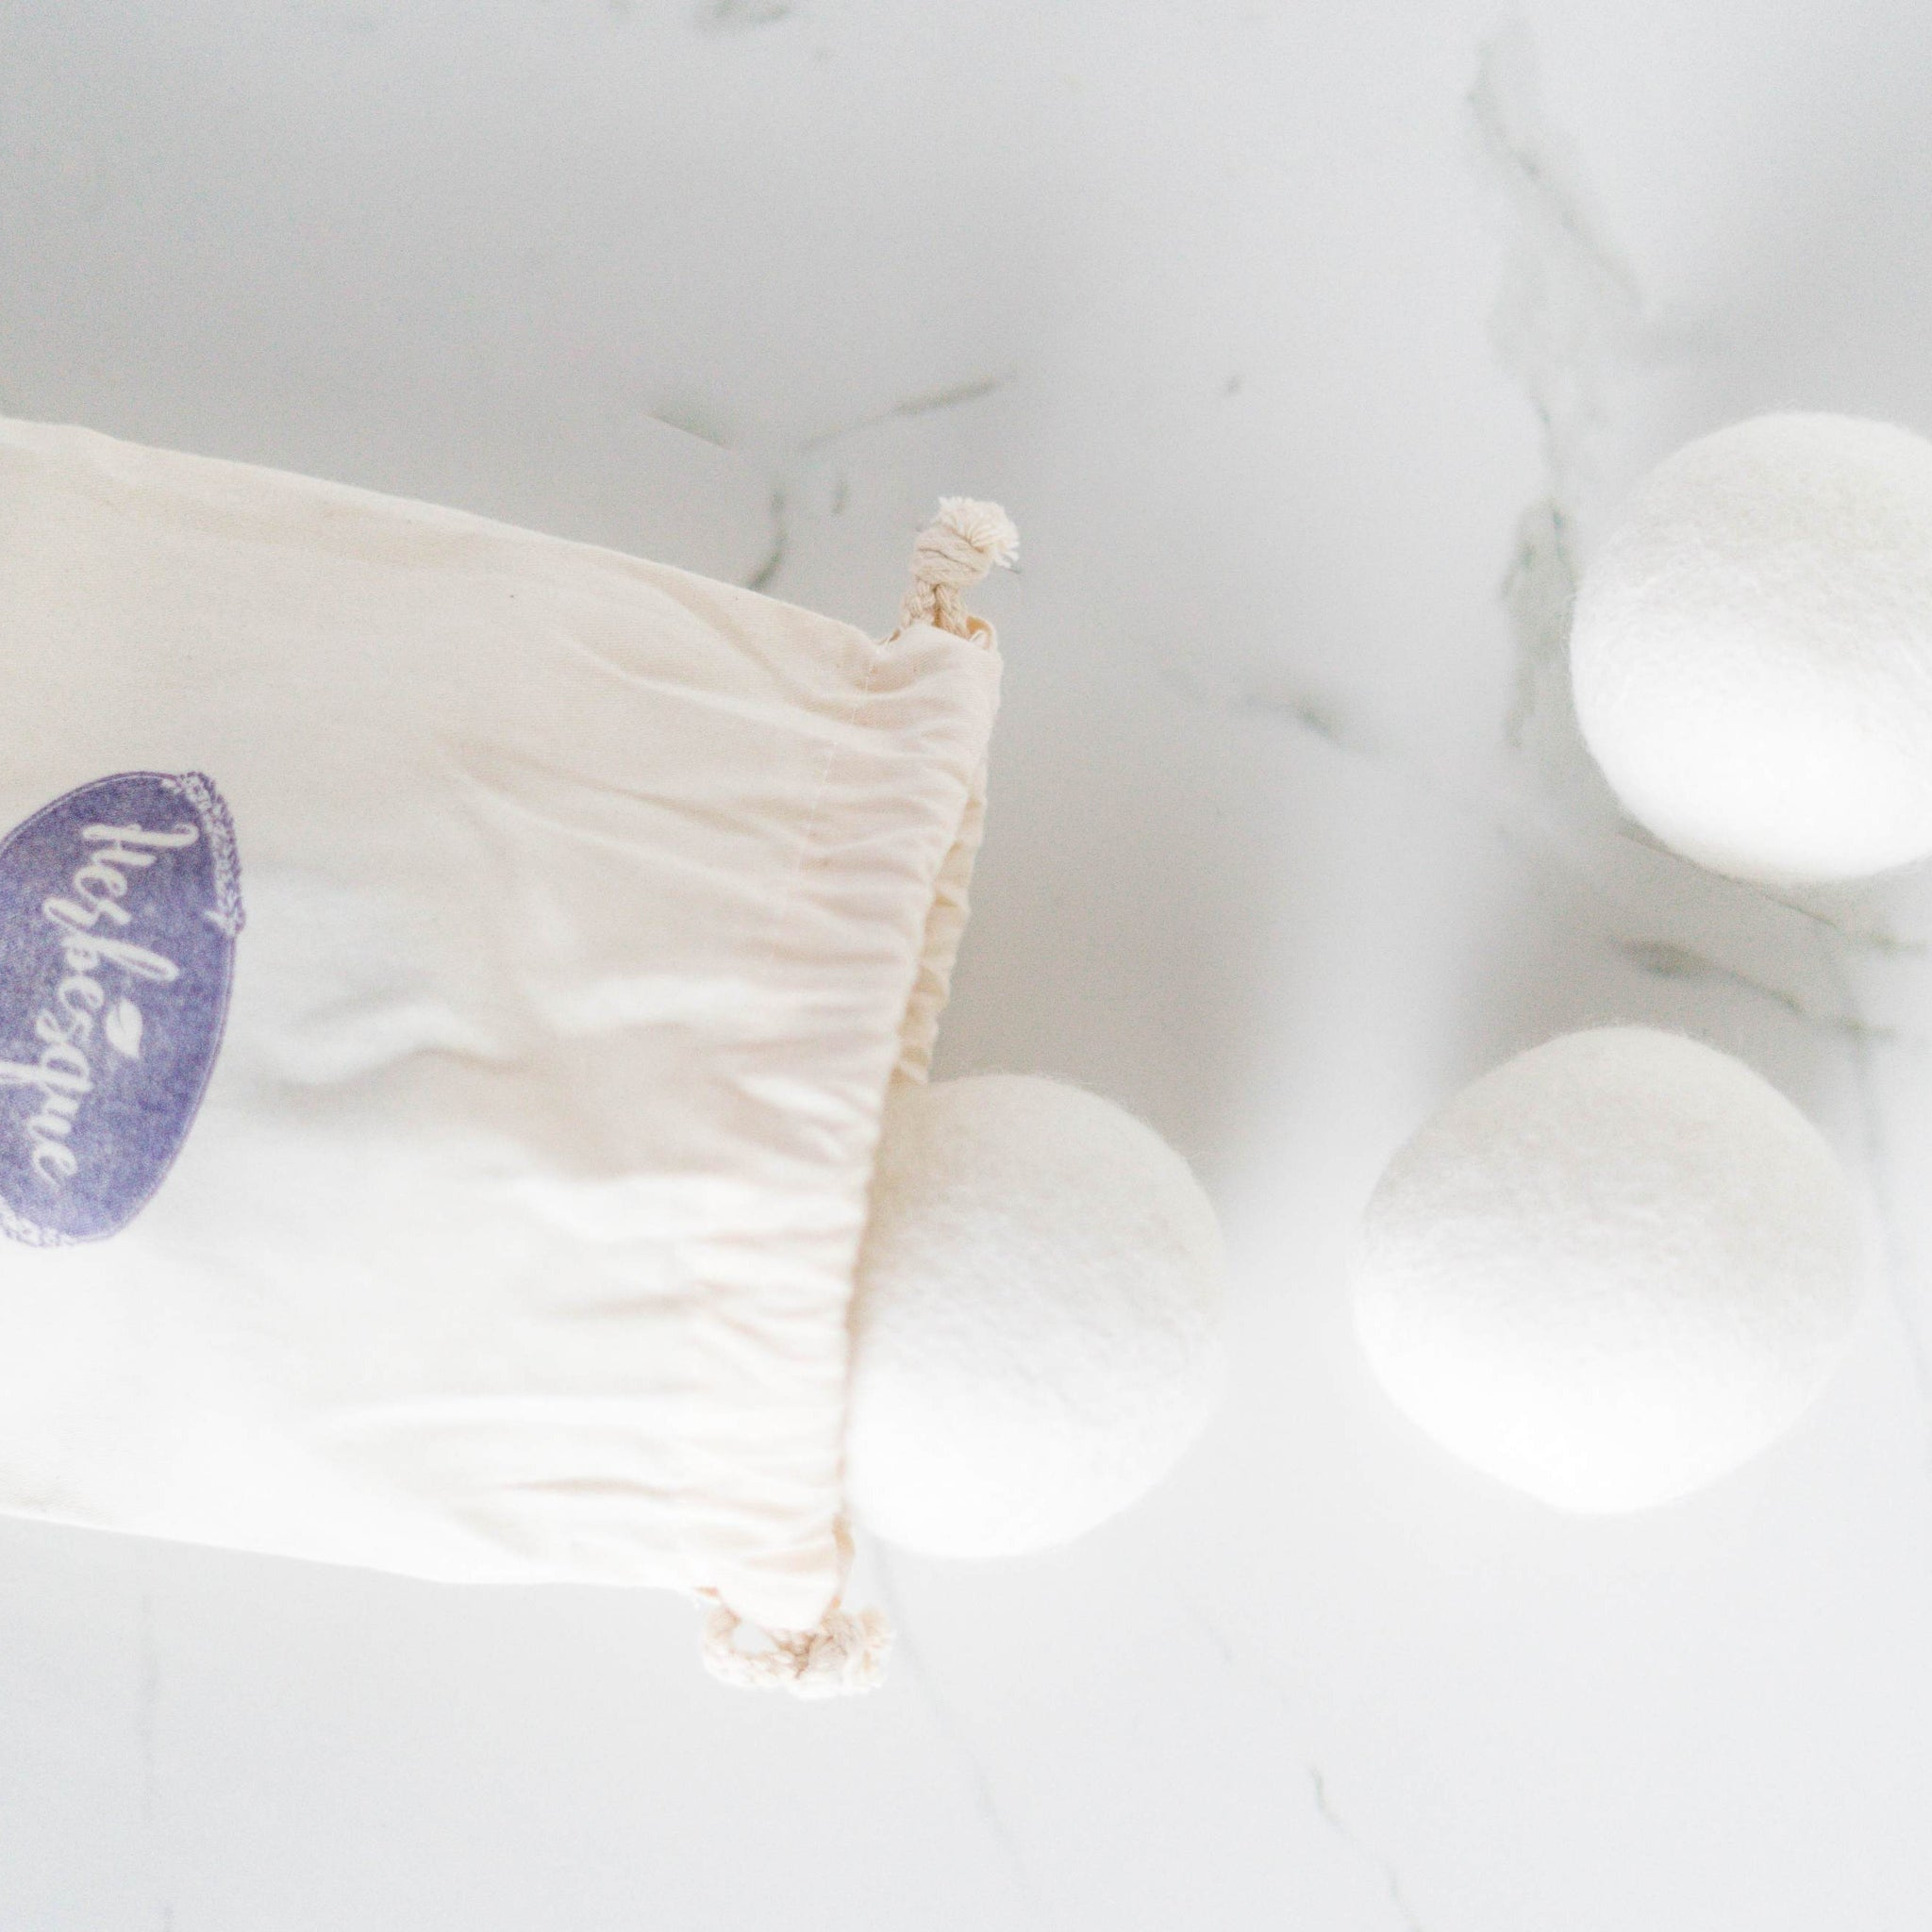 Wool Dryer Balls & Dryer Ball Oil